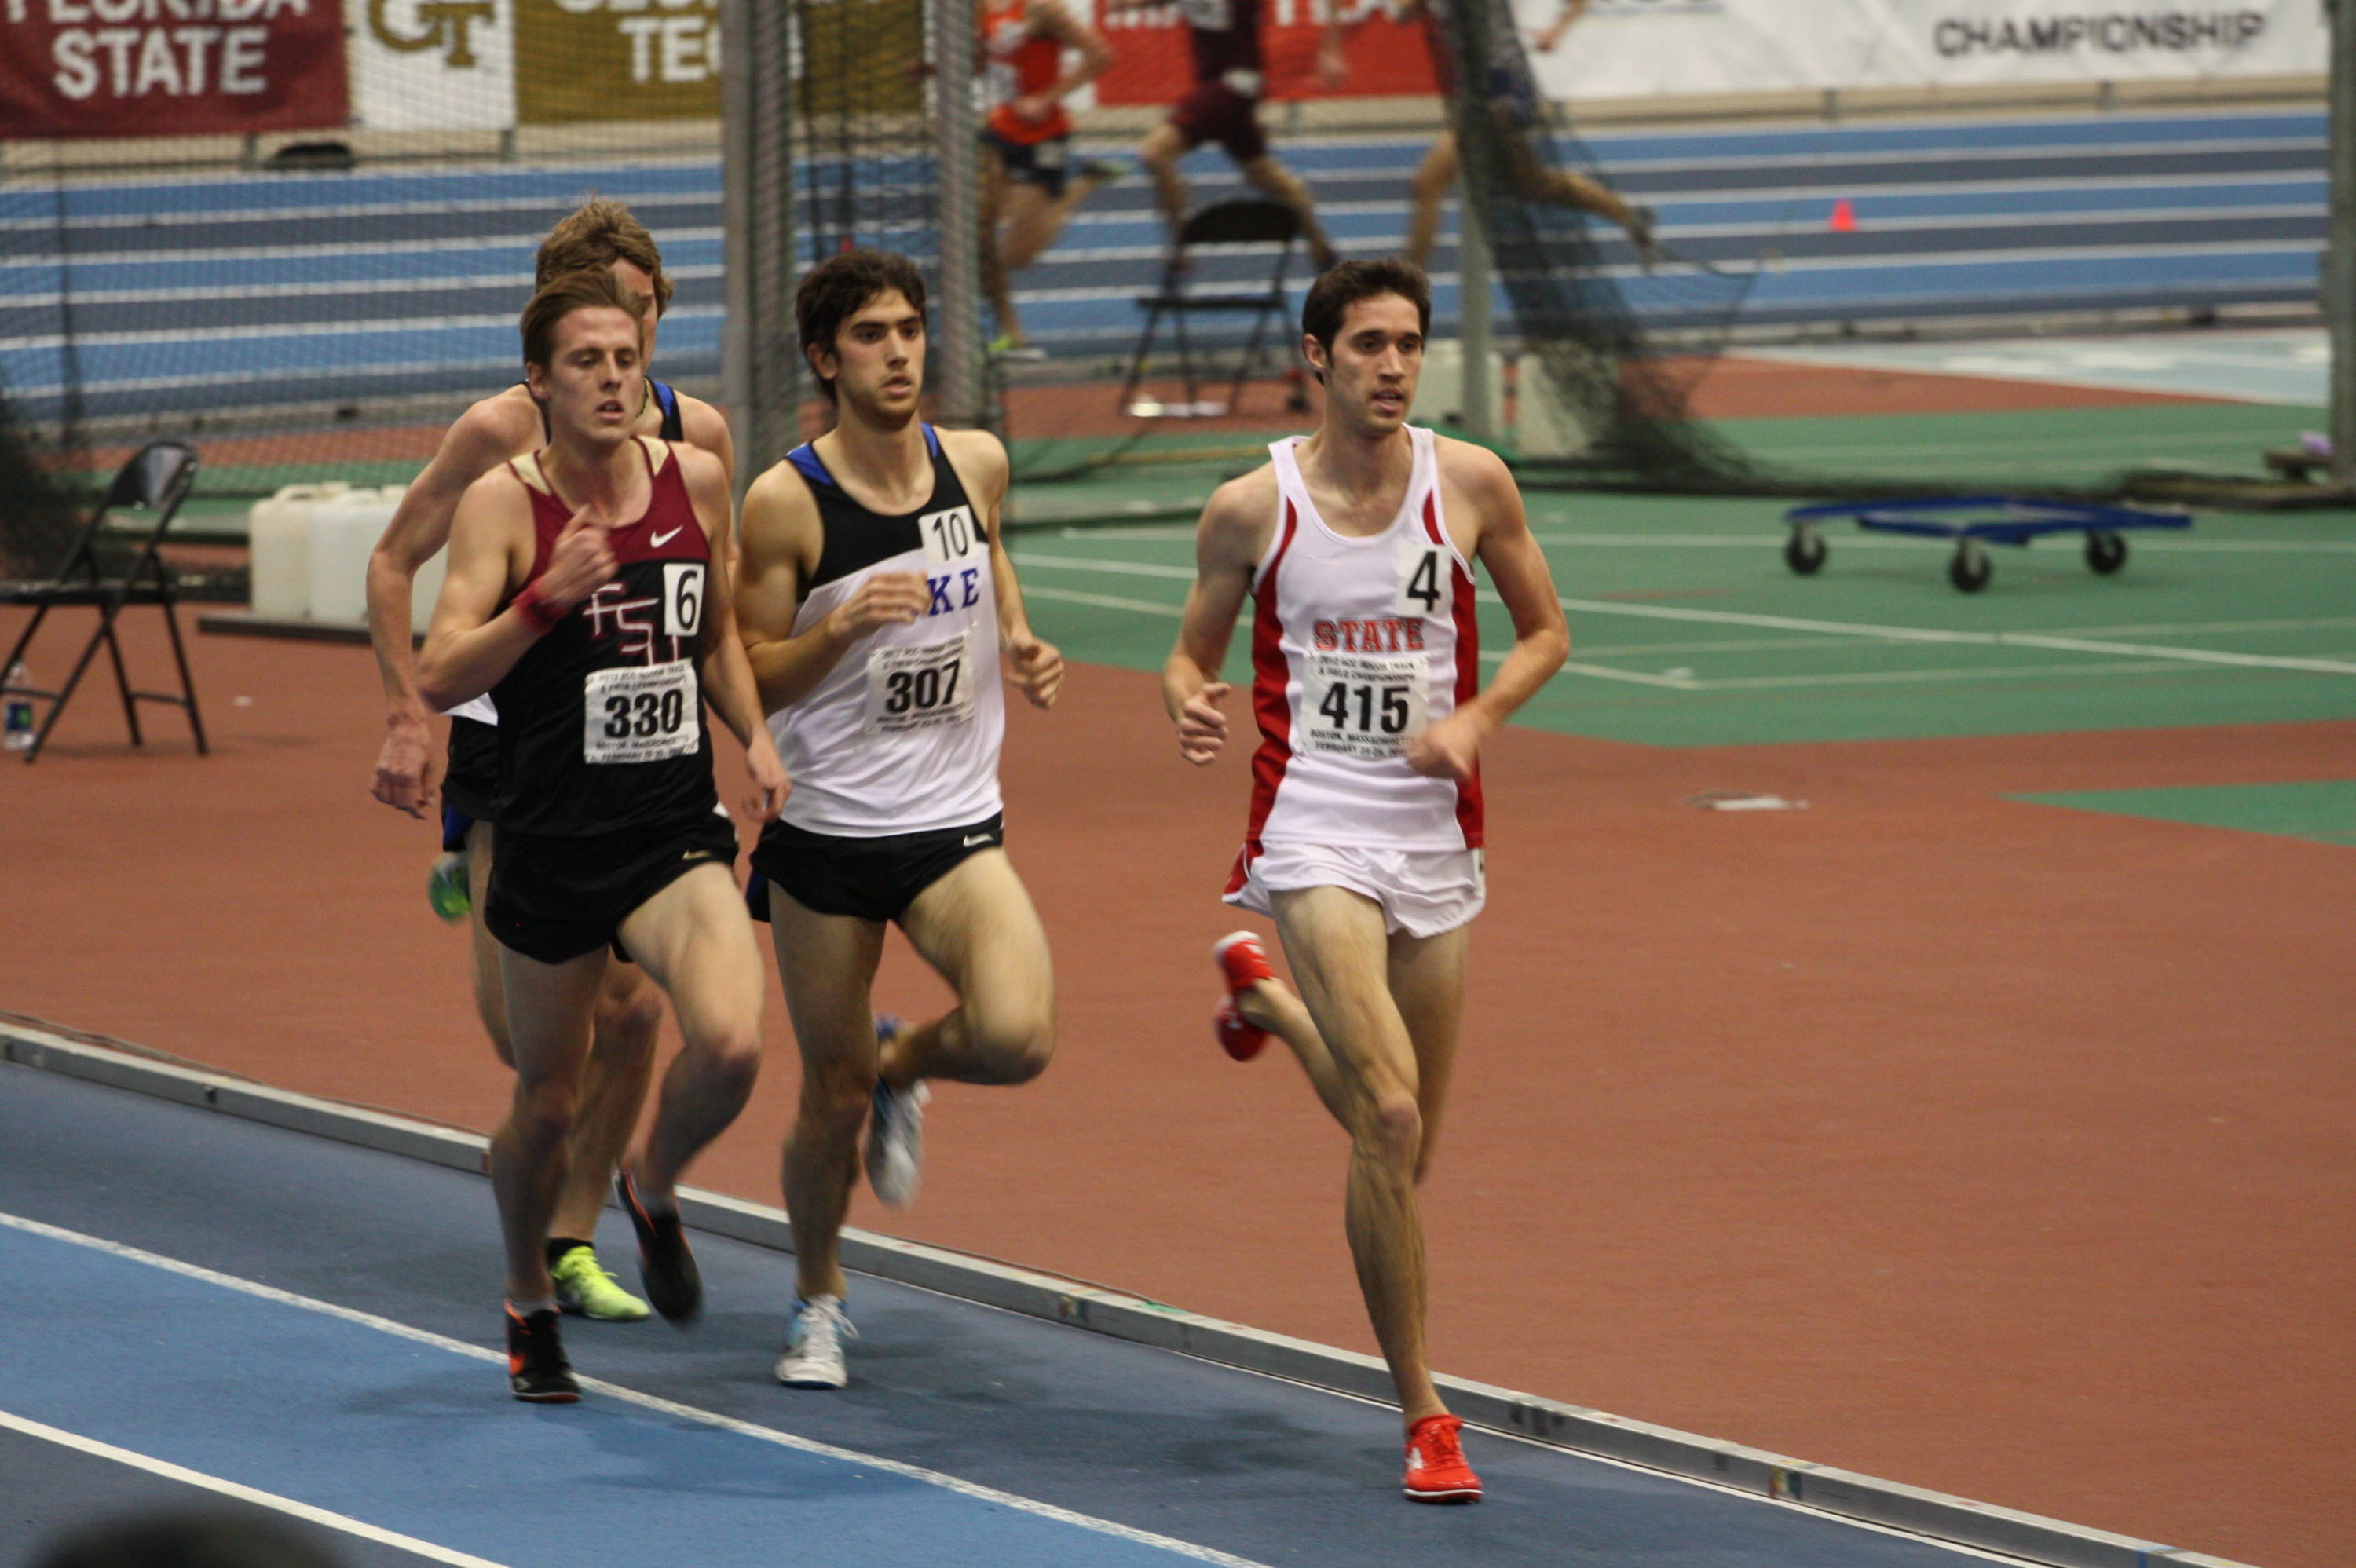 David Forrester makes his late play for second place in the 3000m run, breaking the old ACC meet record in the process.